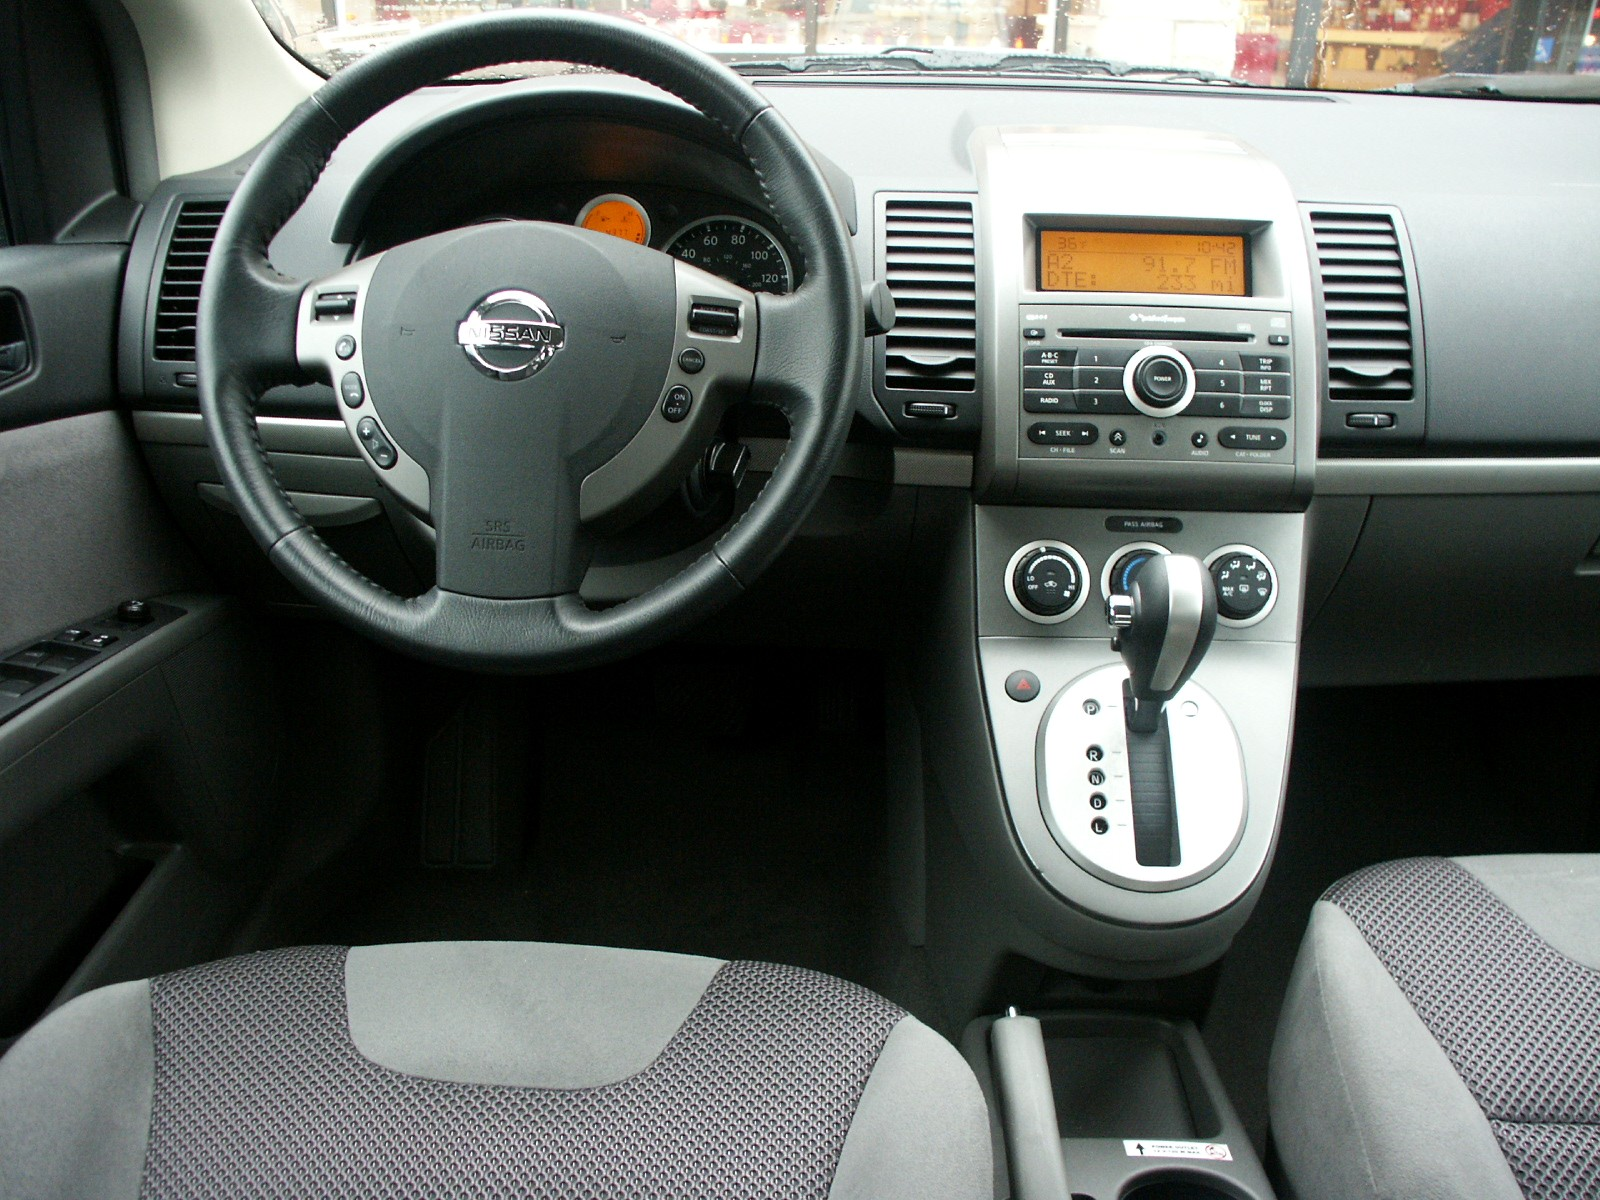 2007 Nissan Sentra - Information and photos - ZombieDrive